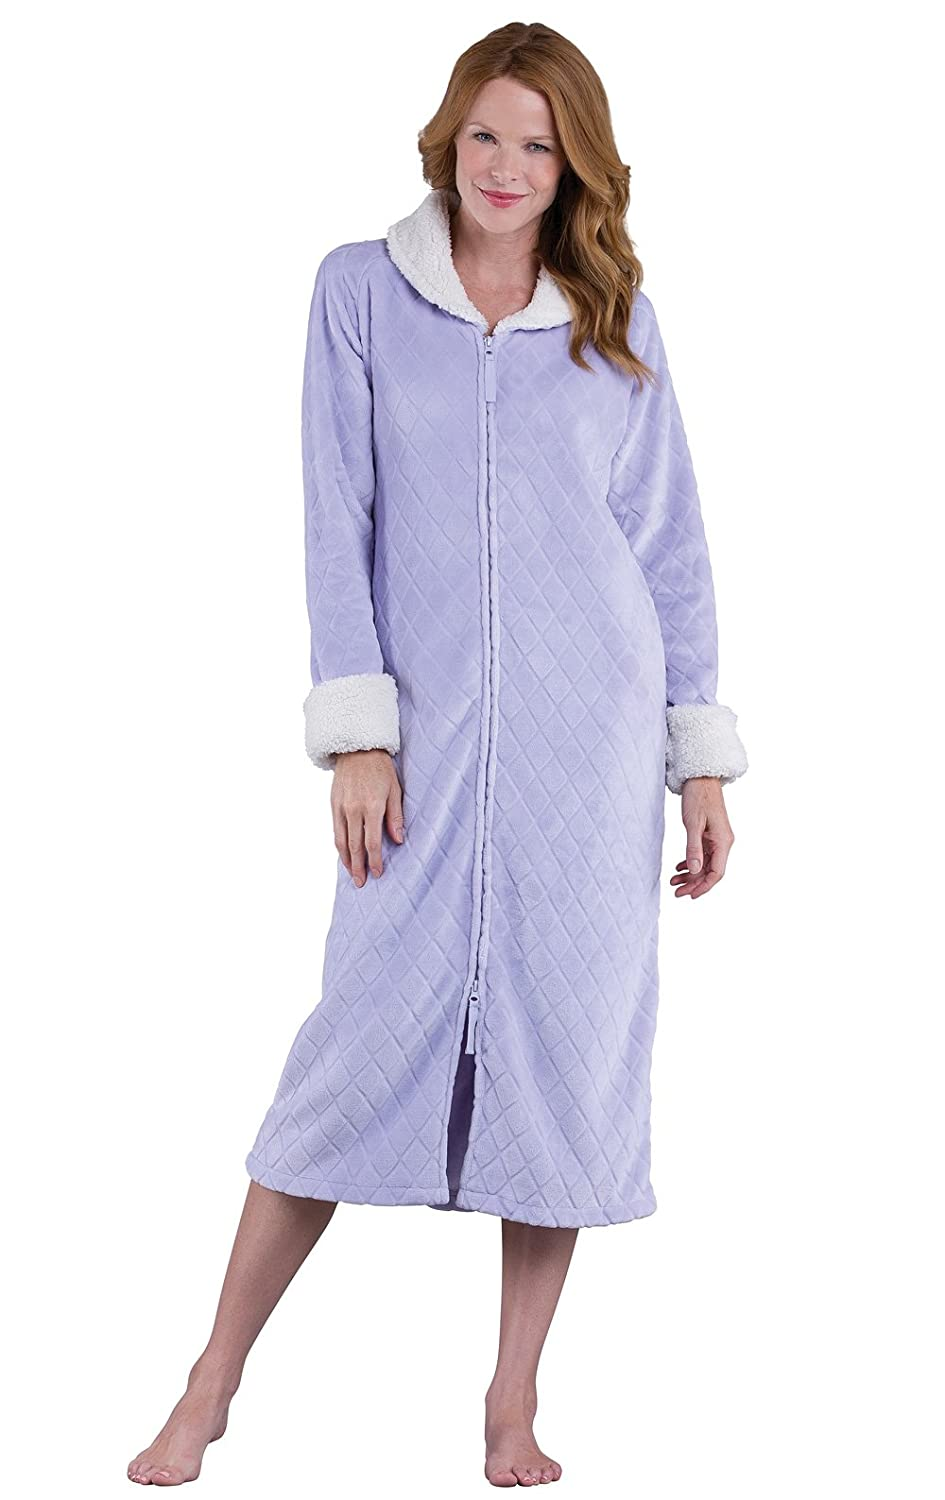 7a3f50f88a PajamaGram Fleece Robes for Women - Zip Up Robe